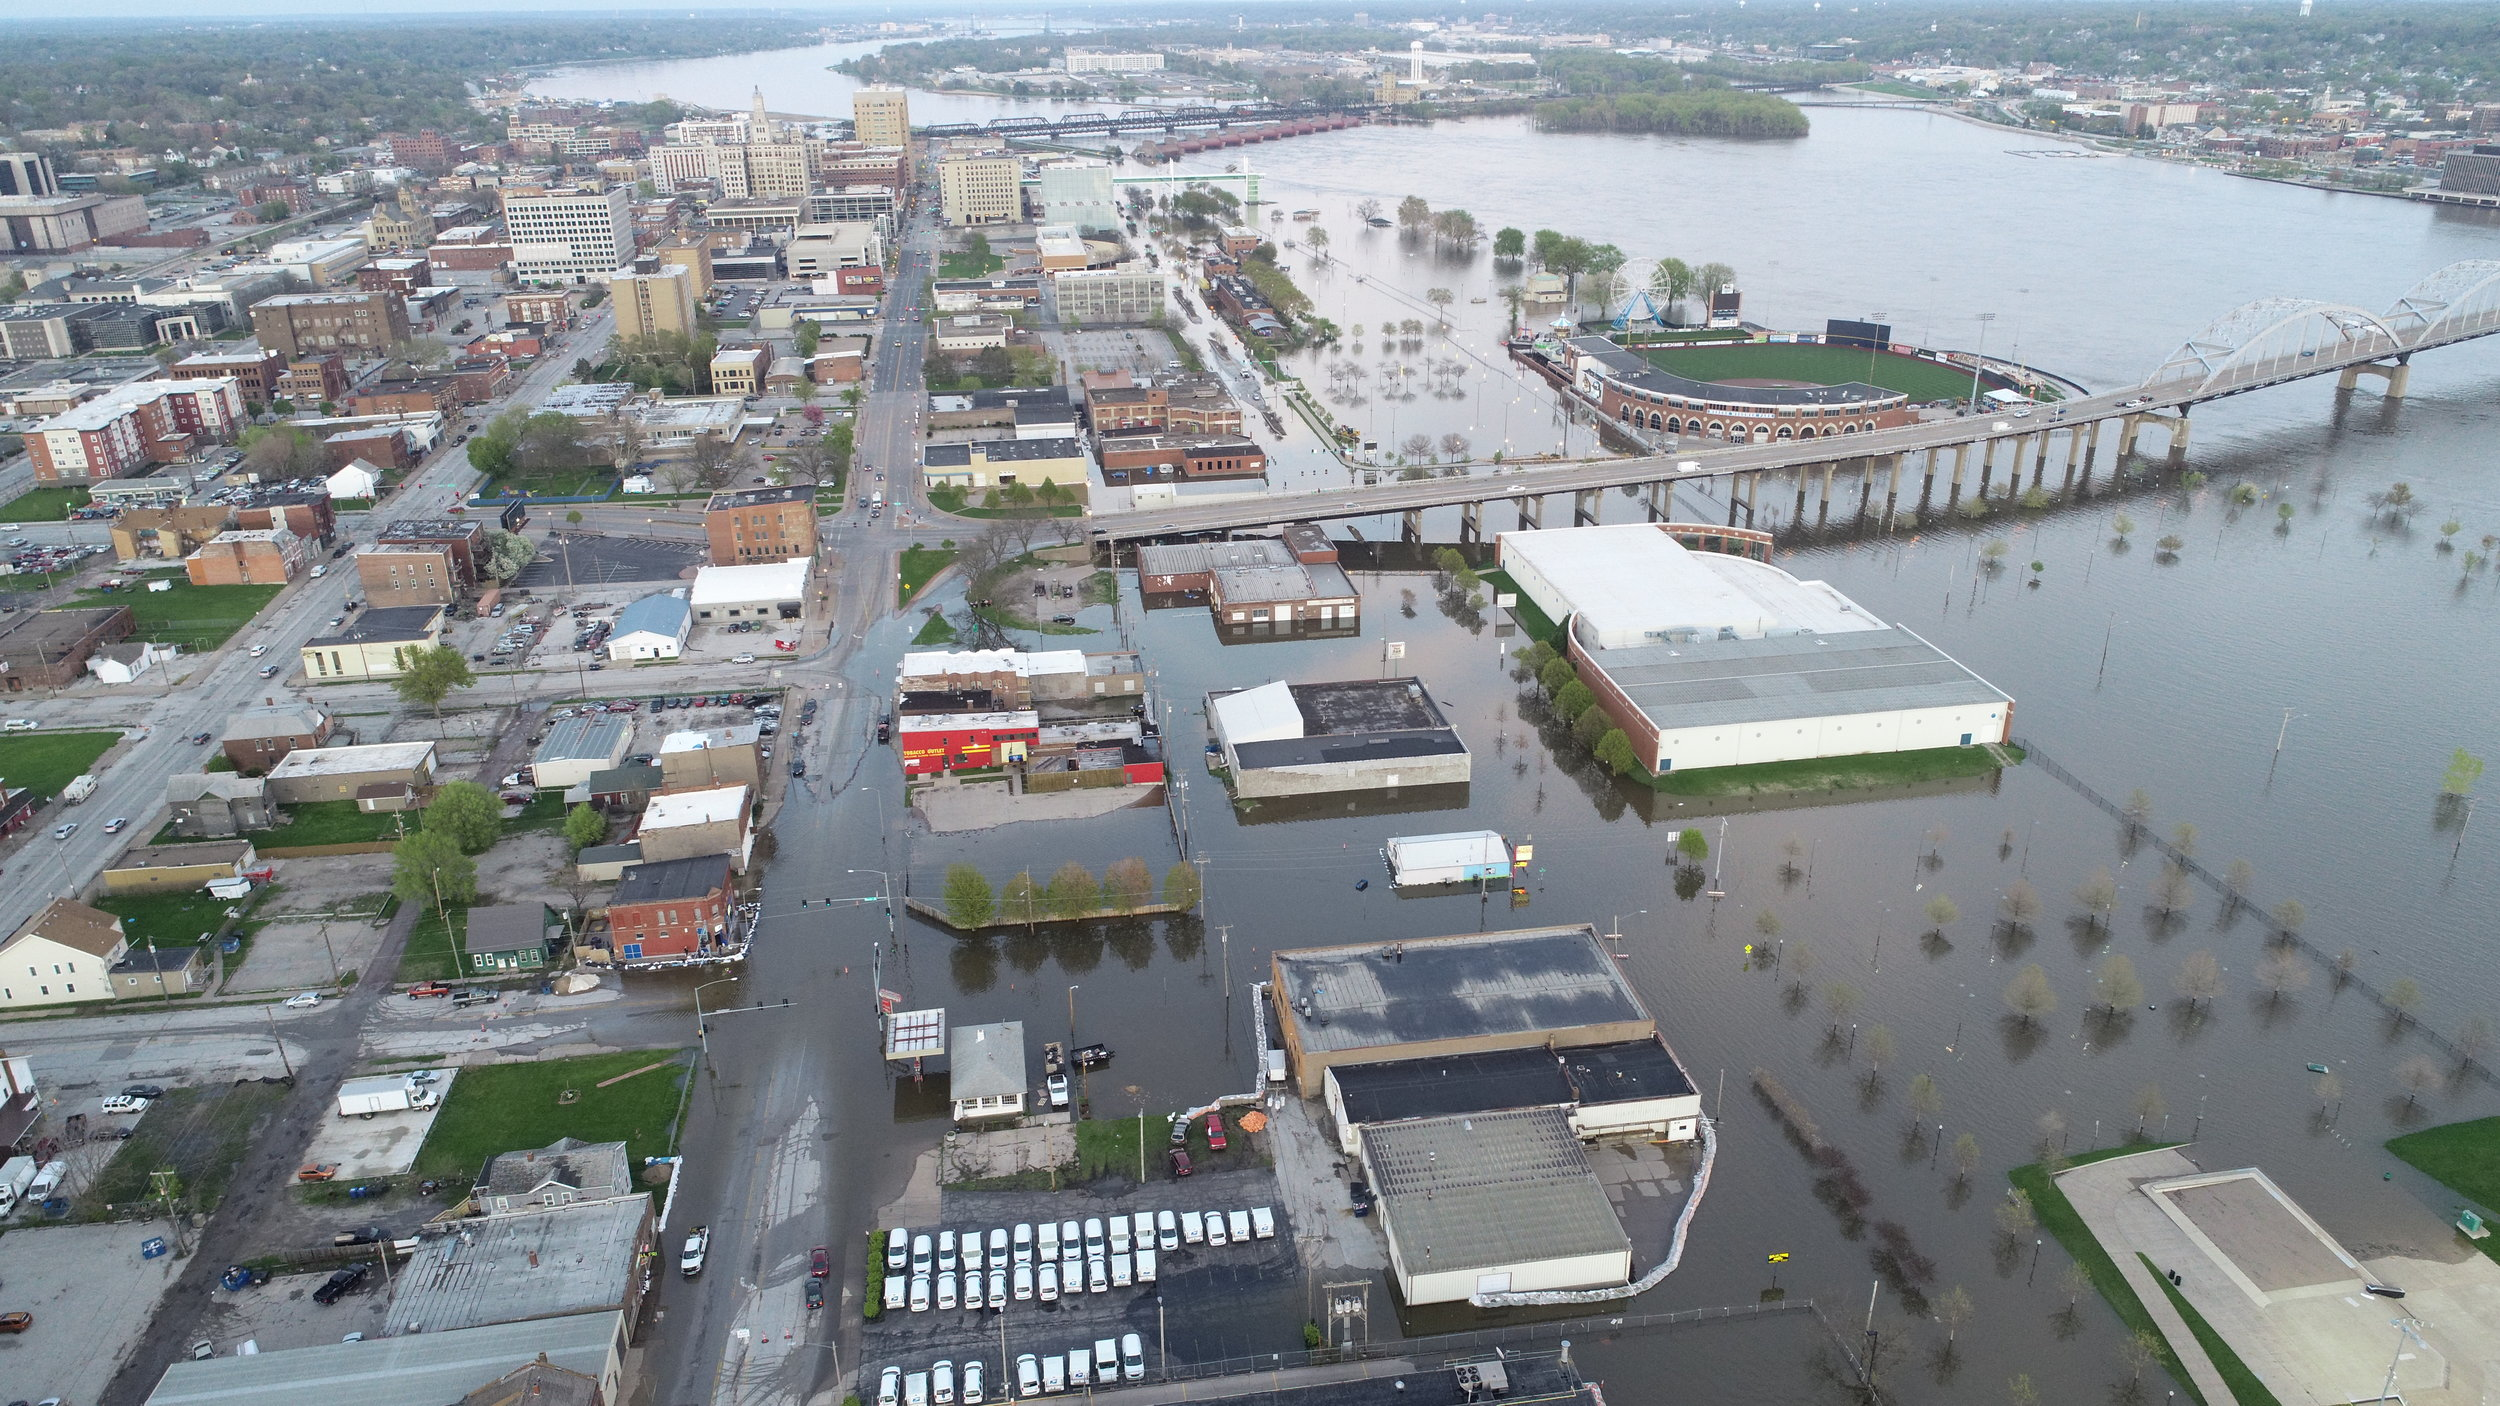 UpintheAir Iowa Downtown Davenport Flood 2019 May.JPG